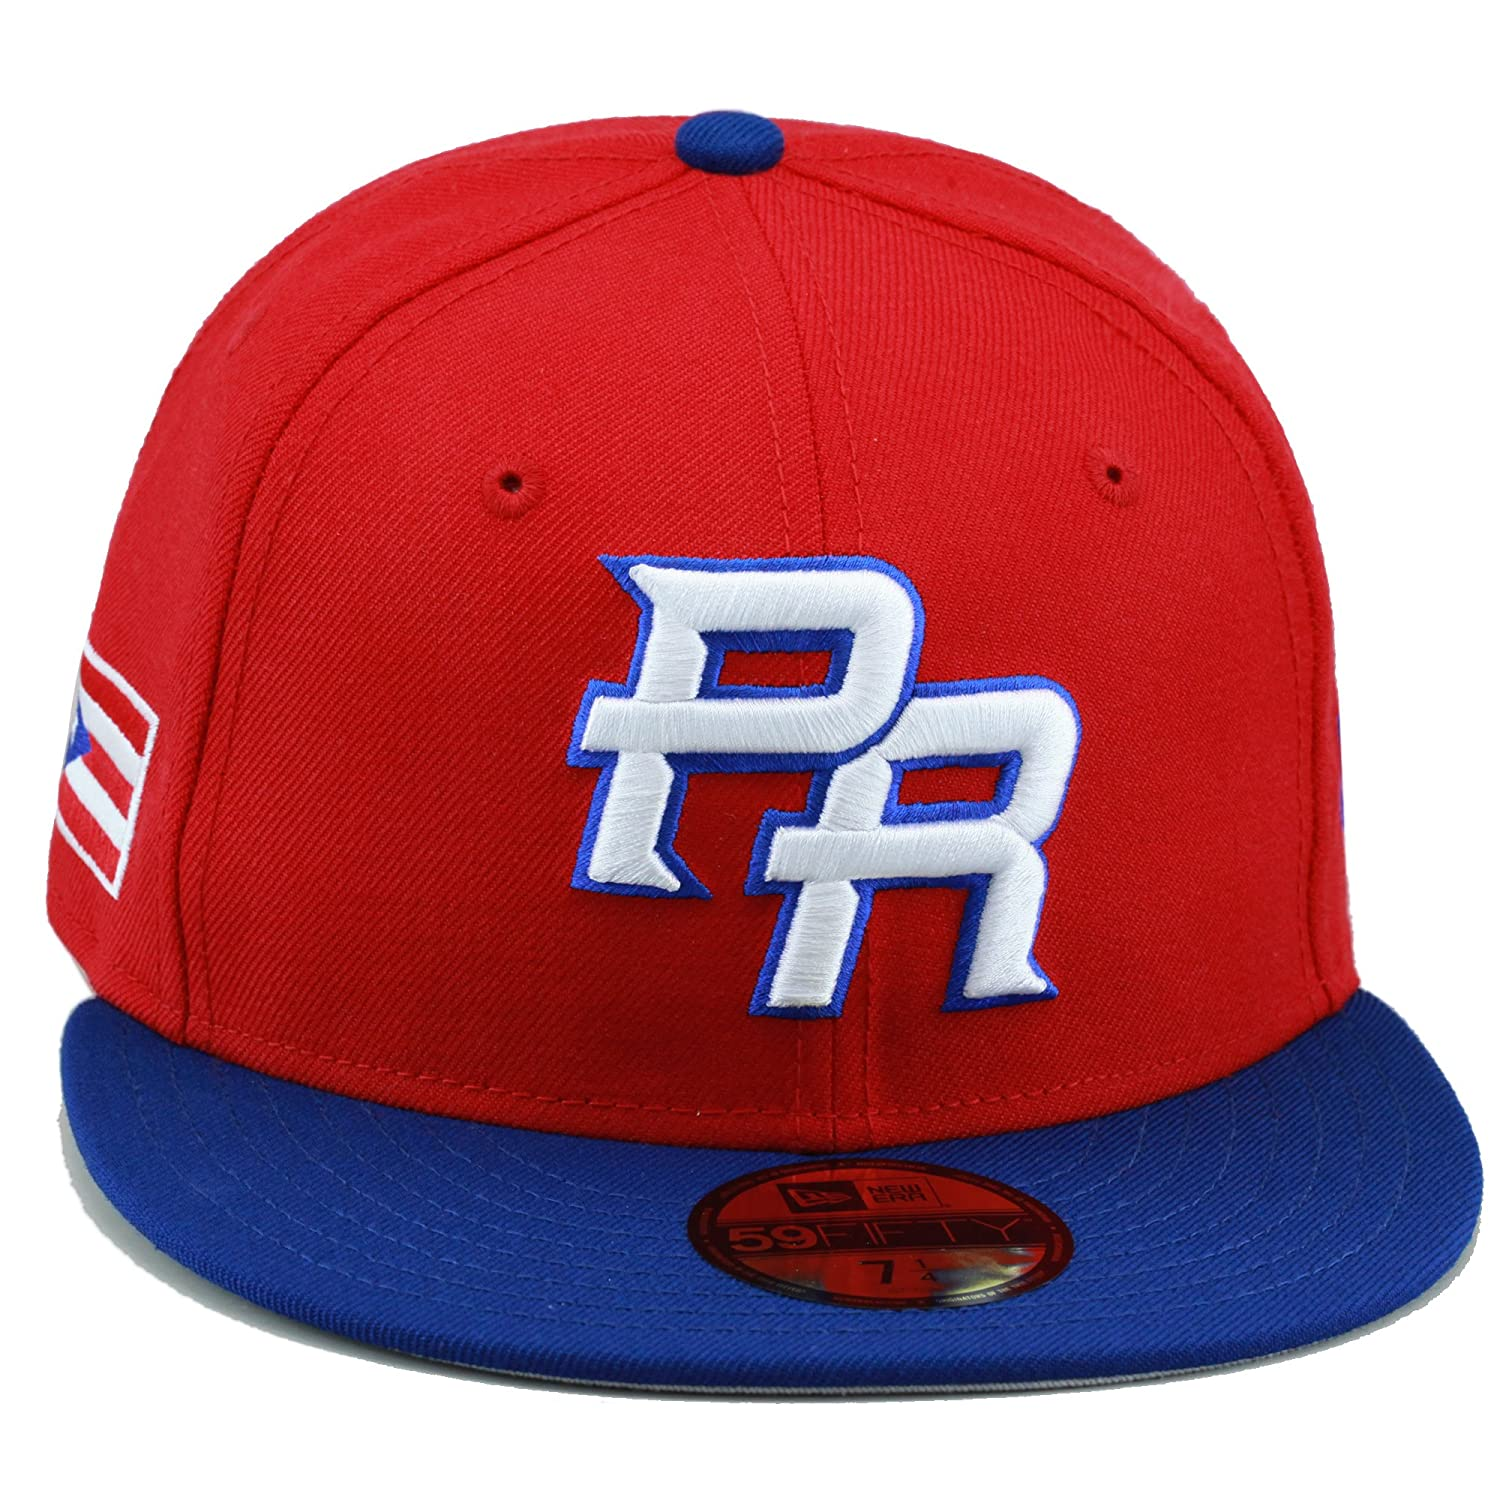 8784c27967d ... discount code for new era wbc pr fitted hat cap red royal puerto rico  flag ad769